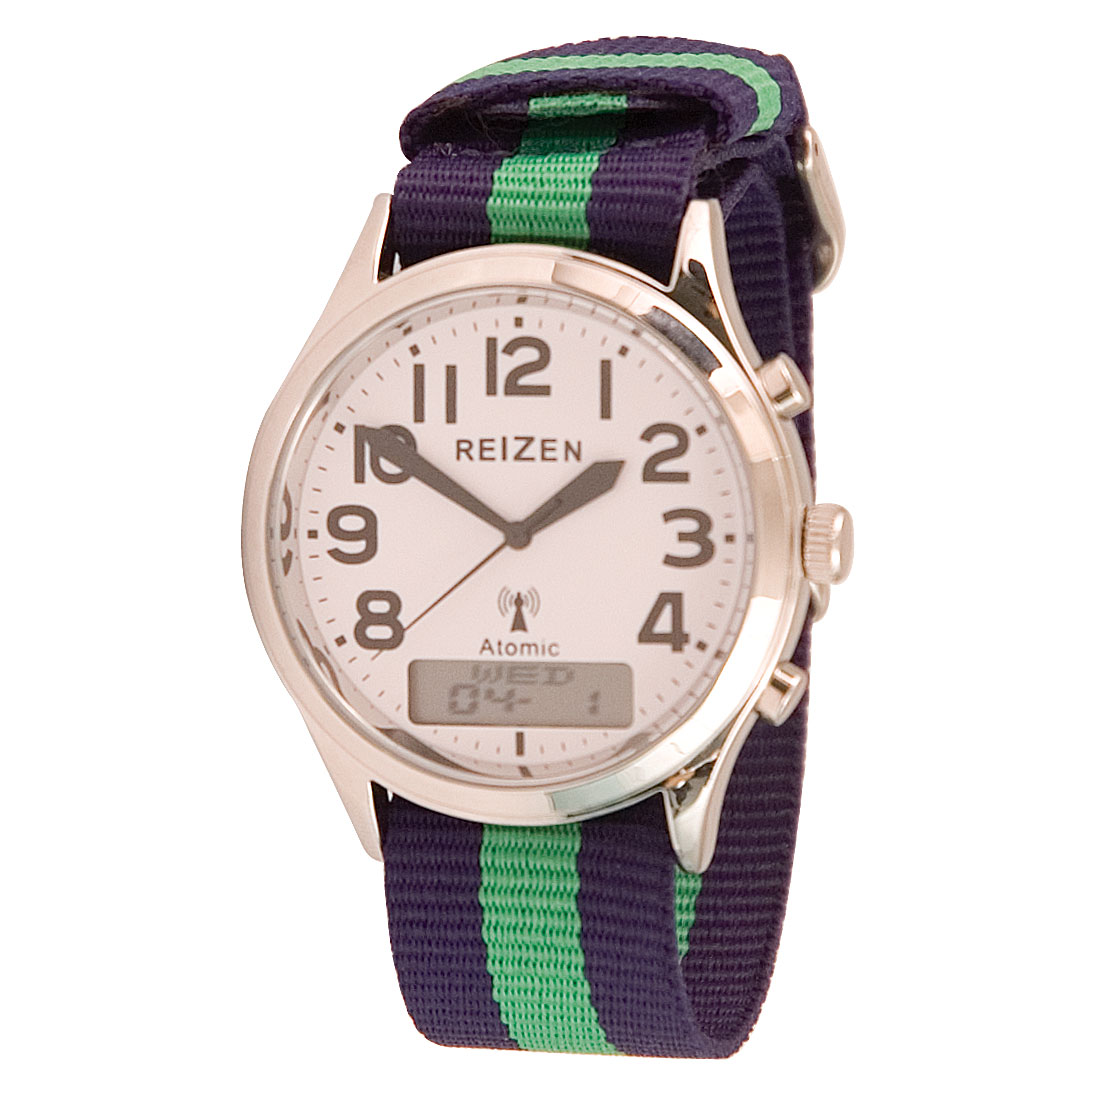 Reizen Low-Vision Ana-Digit Atomic Watch - Green-Blue Striped Band